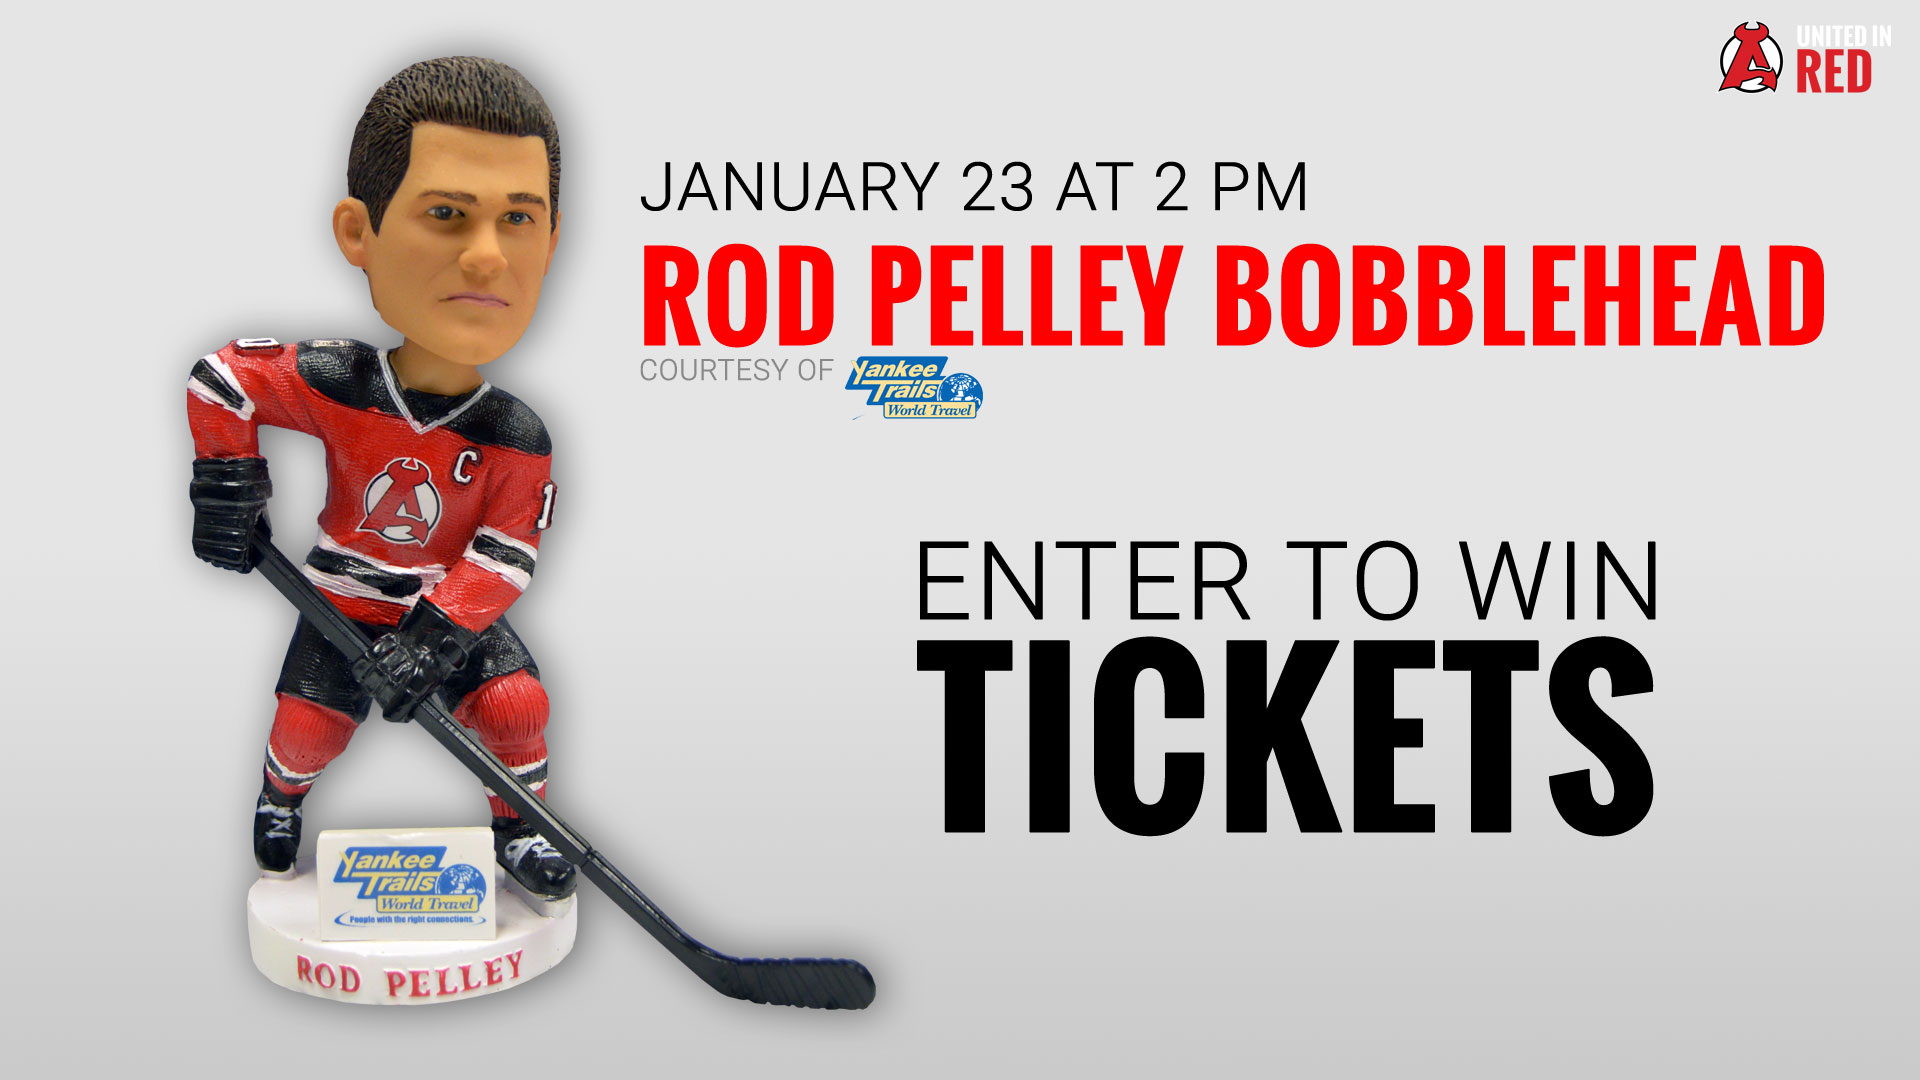 The first 1 500 fans through the turnstiles on Saturday January 23 will receive a Rod Pelley Bobblehead courtesy of Yankee Trails World Travel